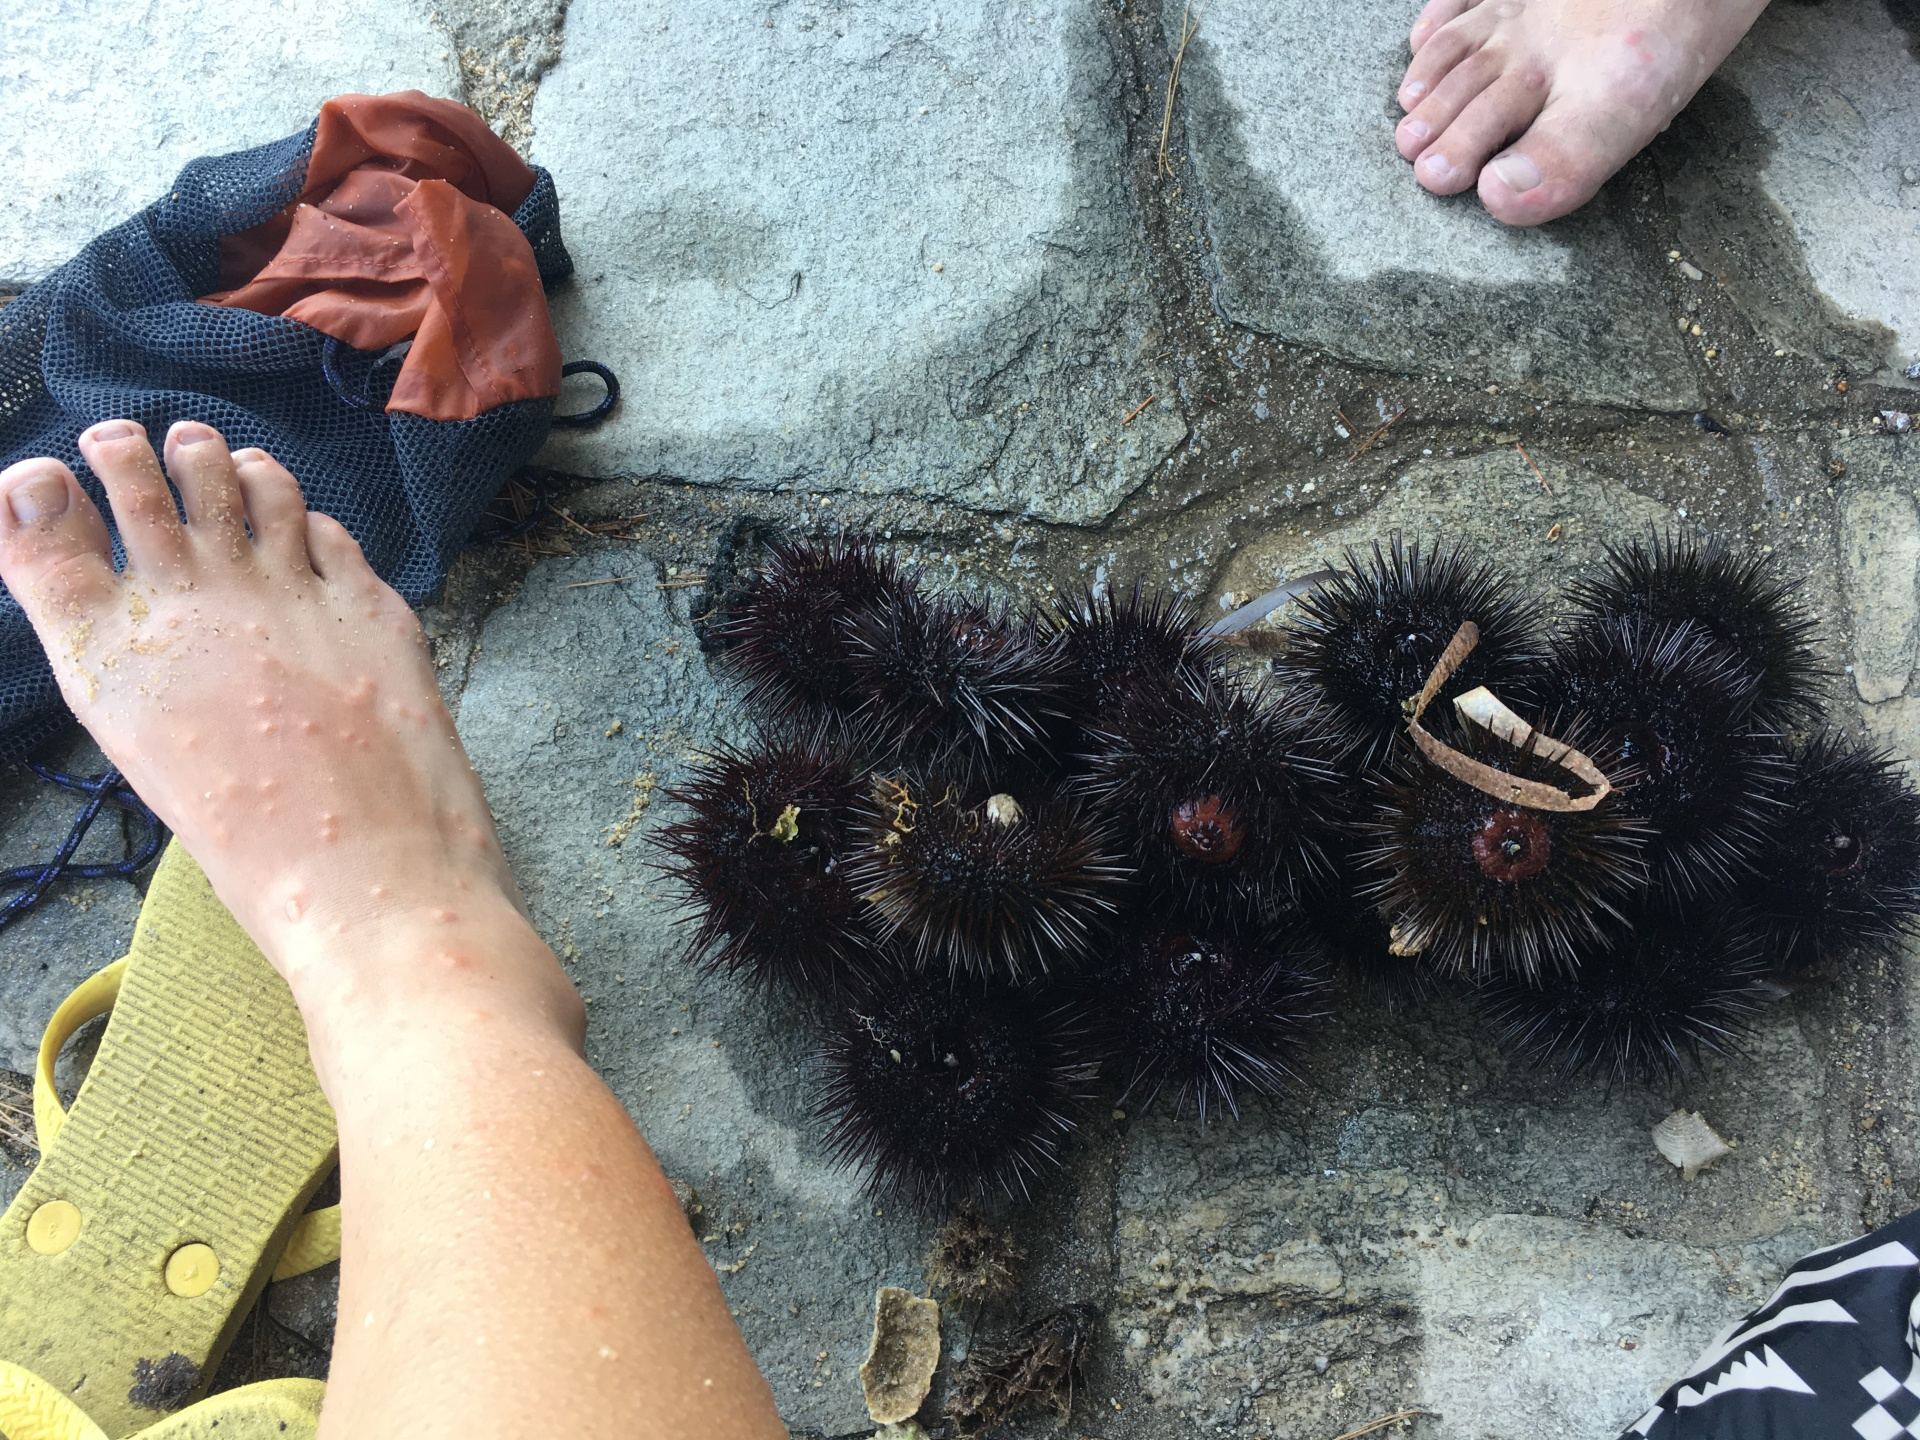 mosquito-bites-and-sea-urchins